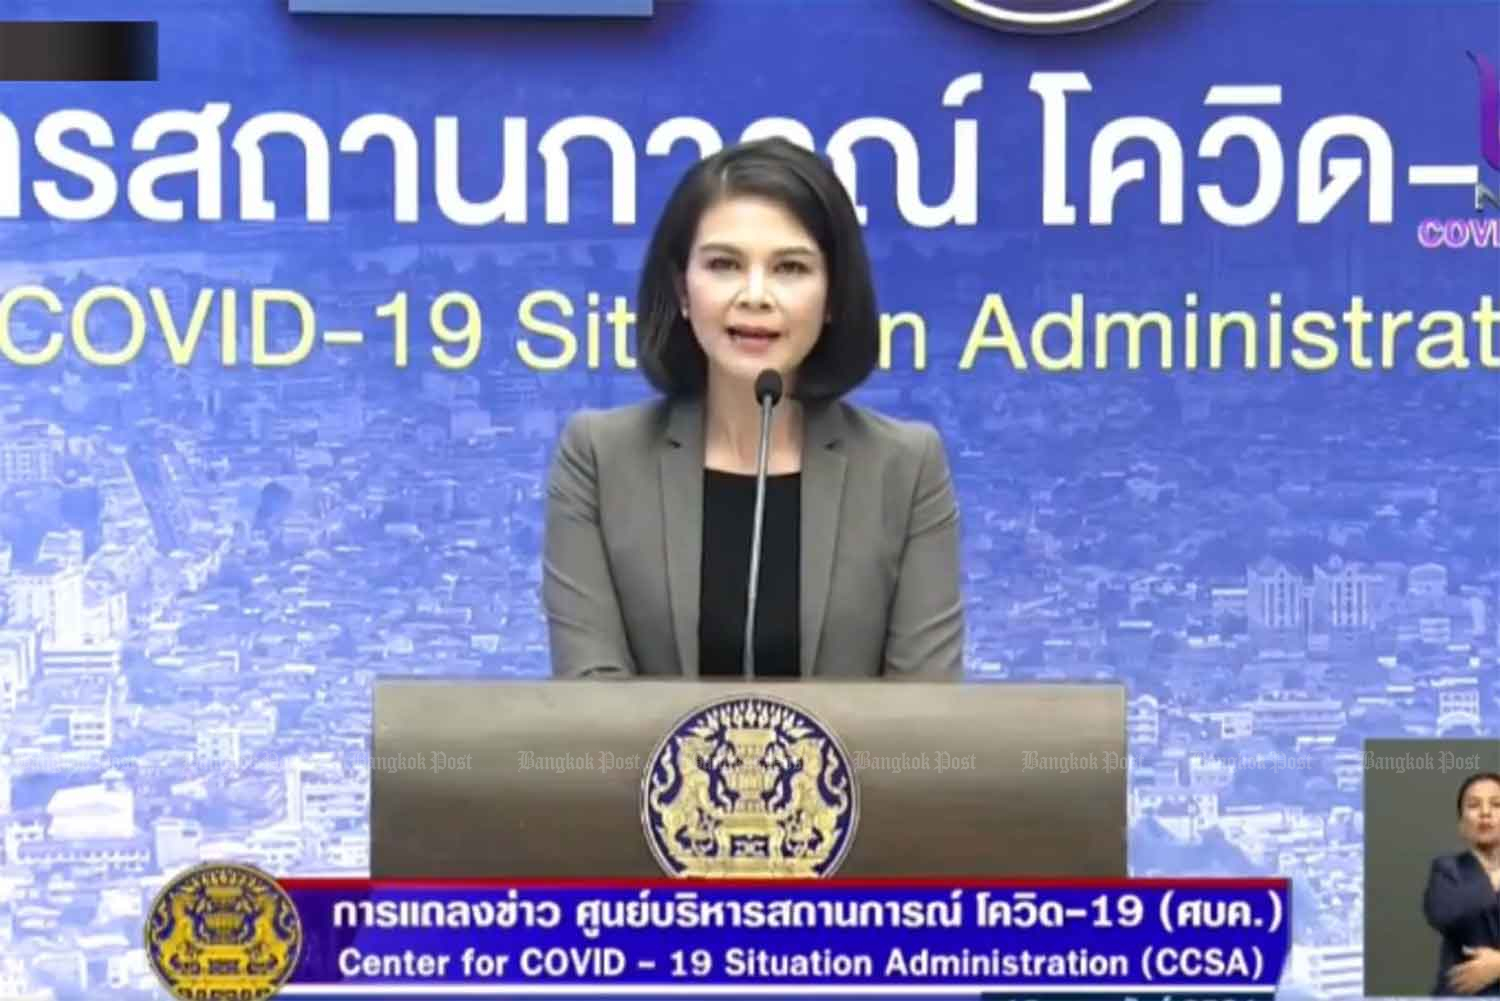 Dr Apisamai Srirangson, assistant spokeswoman for the Centre for Covid-19 Situation Administration, speaks about Covid-19 vaccine's availability, at Government House on Thursday. (Screenshot)